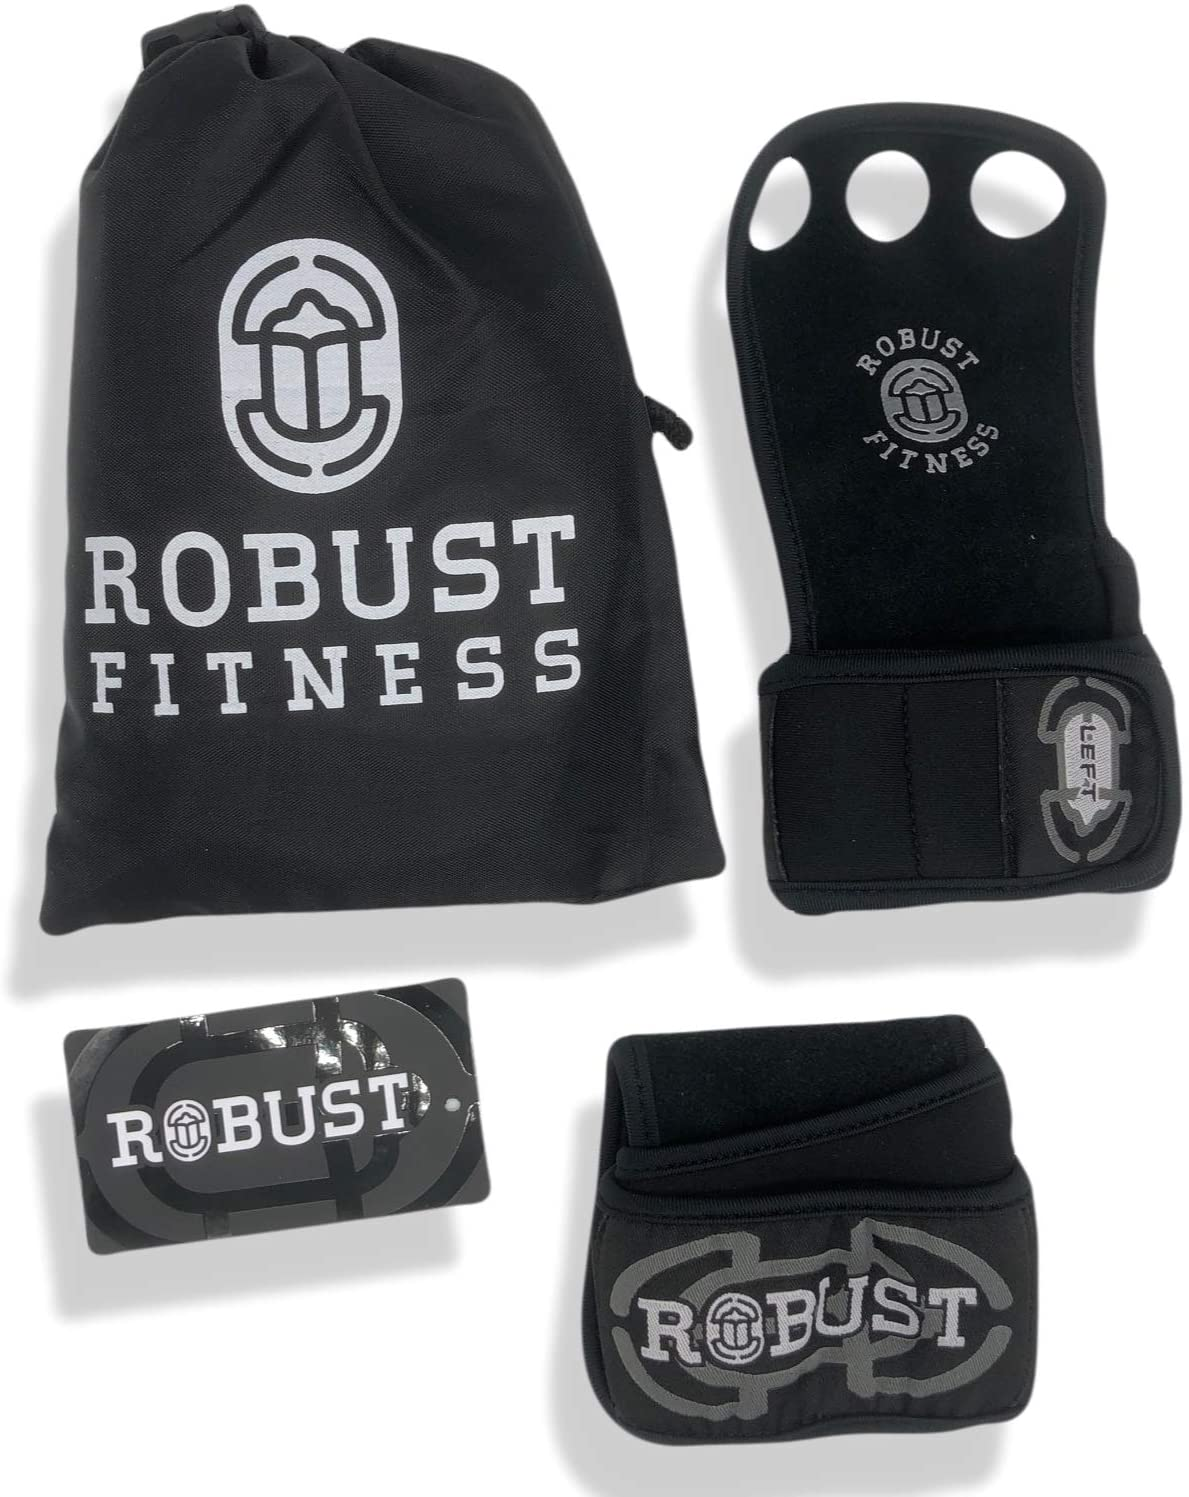 ROBUST FITNESS Genuine free Leather Hand Cross-Training Pu for Grips Dealing full price reduction